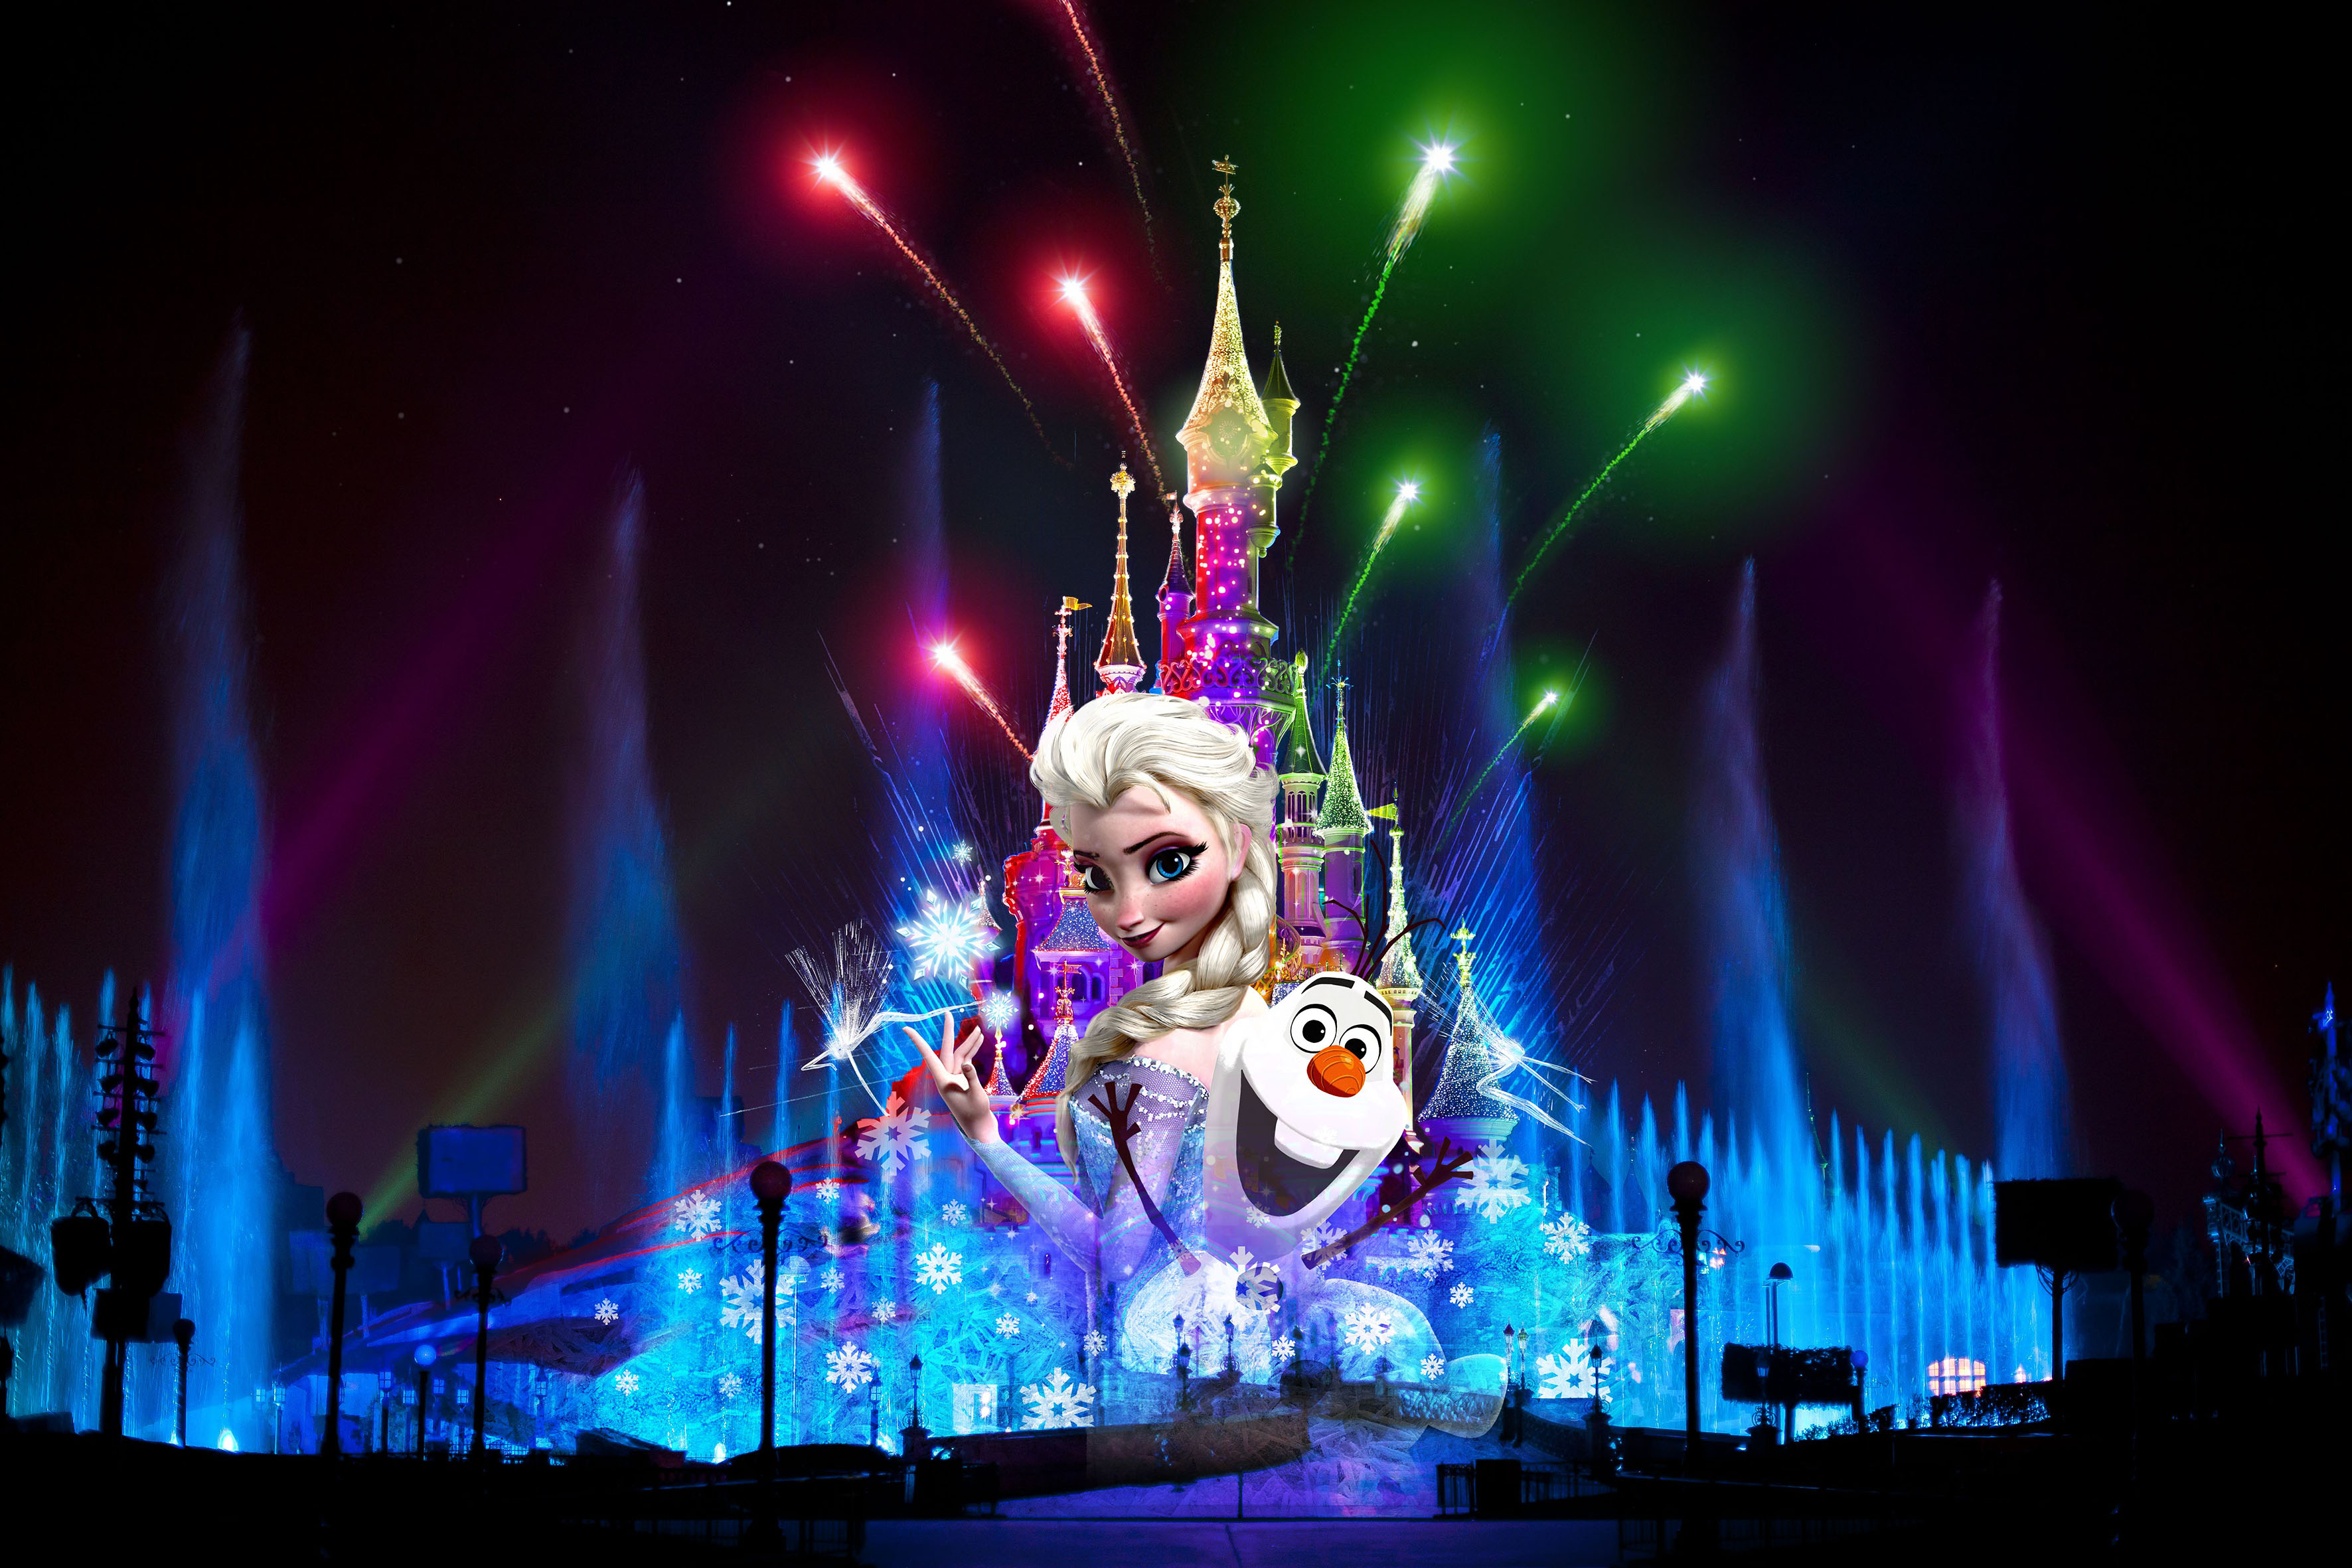 Will Disney Parks Cut Classics to Make Room for Frozen and Tangled?